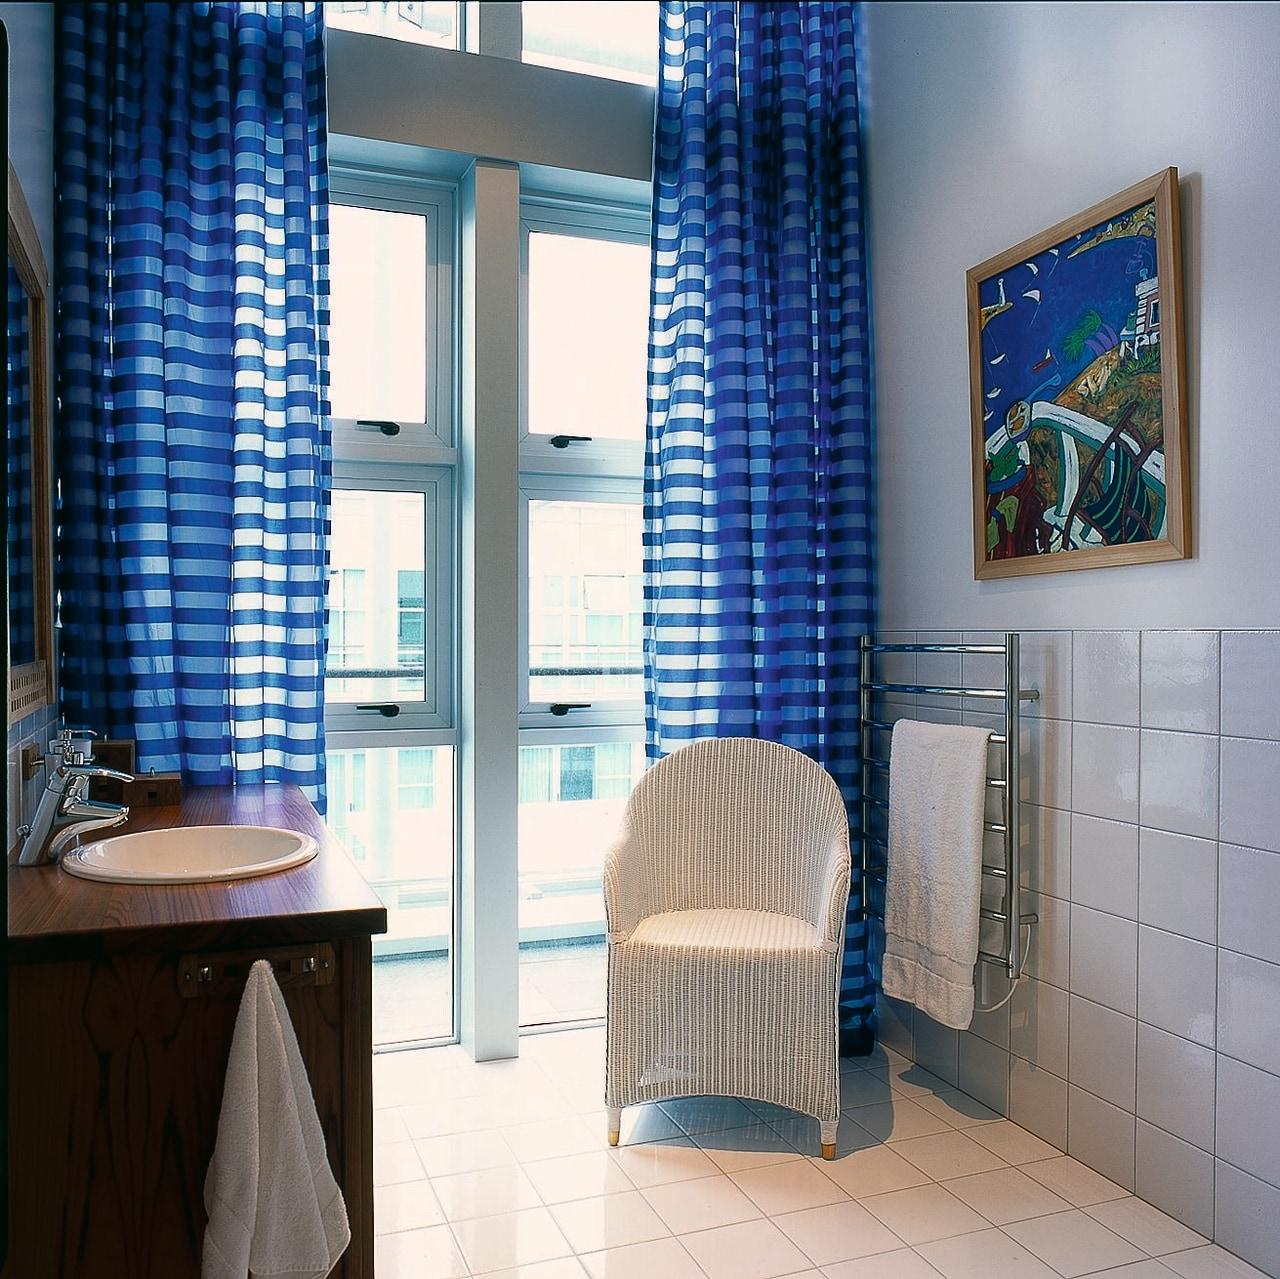 View of the bathroom & it's windows bathroom, blue, curtain, interior design, room, window, window covering, window treatment, gray